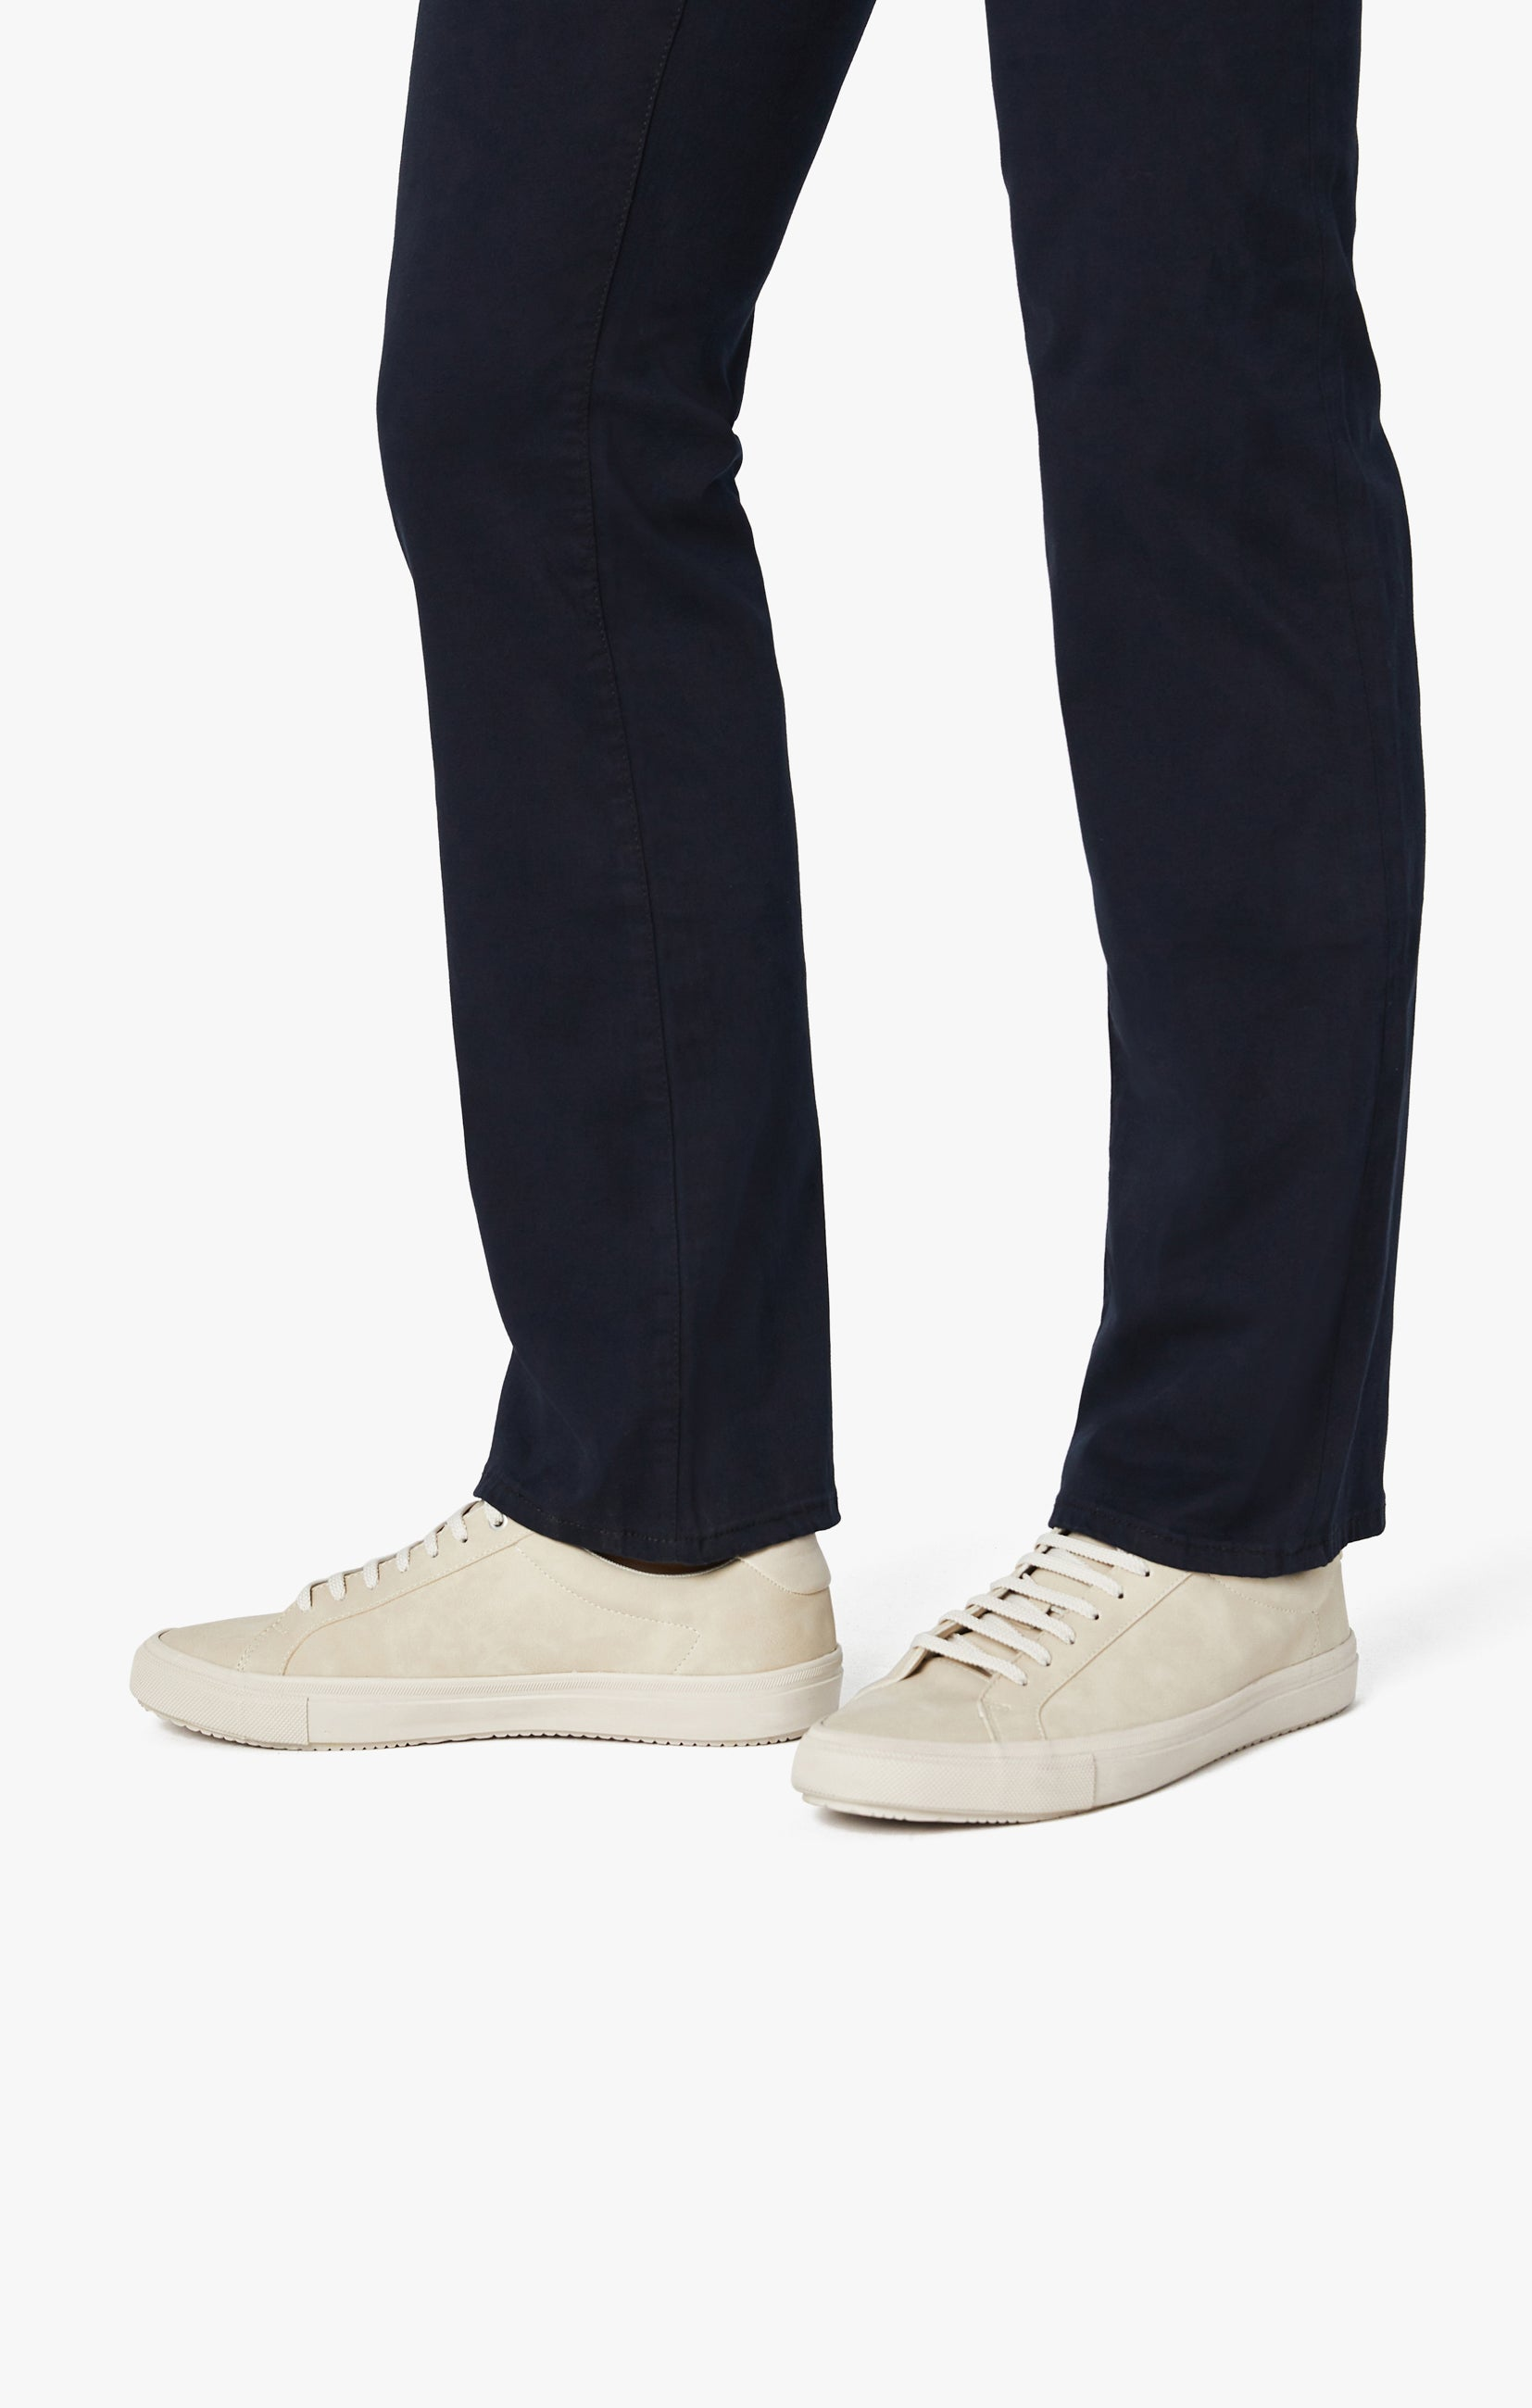 Charisma Relaxed Straight Pants in Navy Twill Image 5